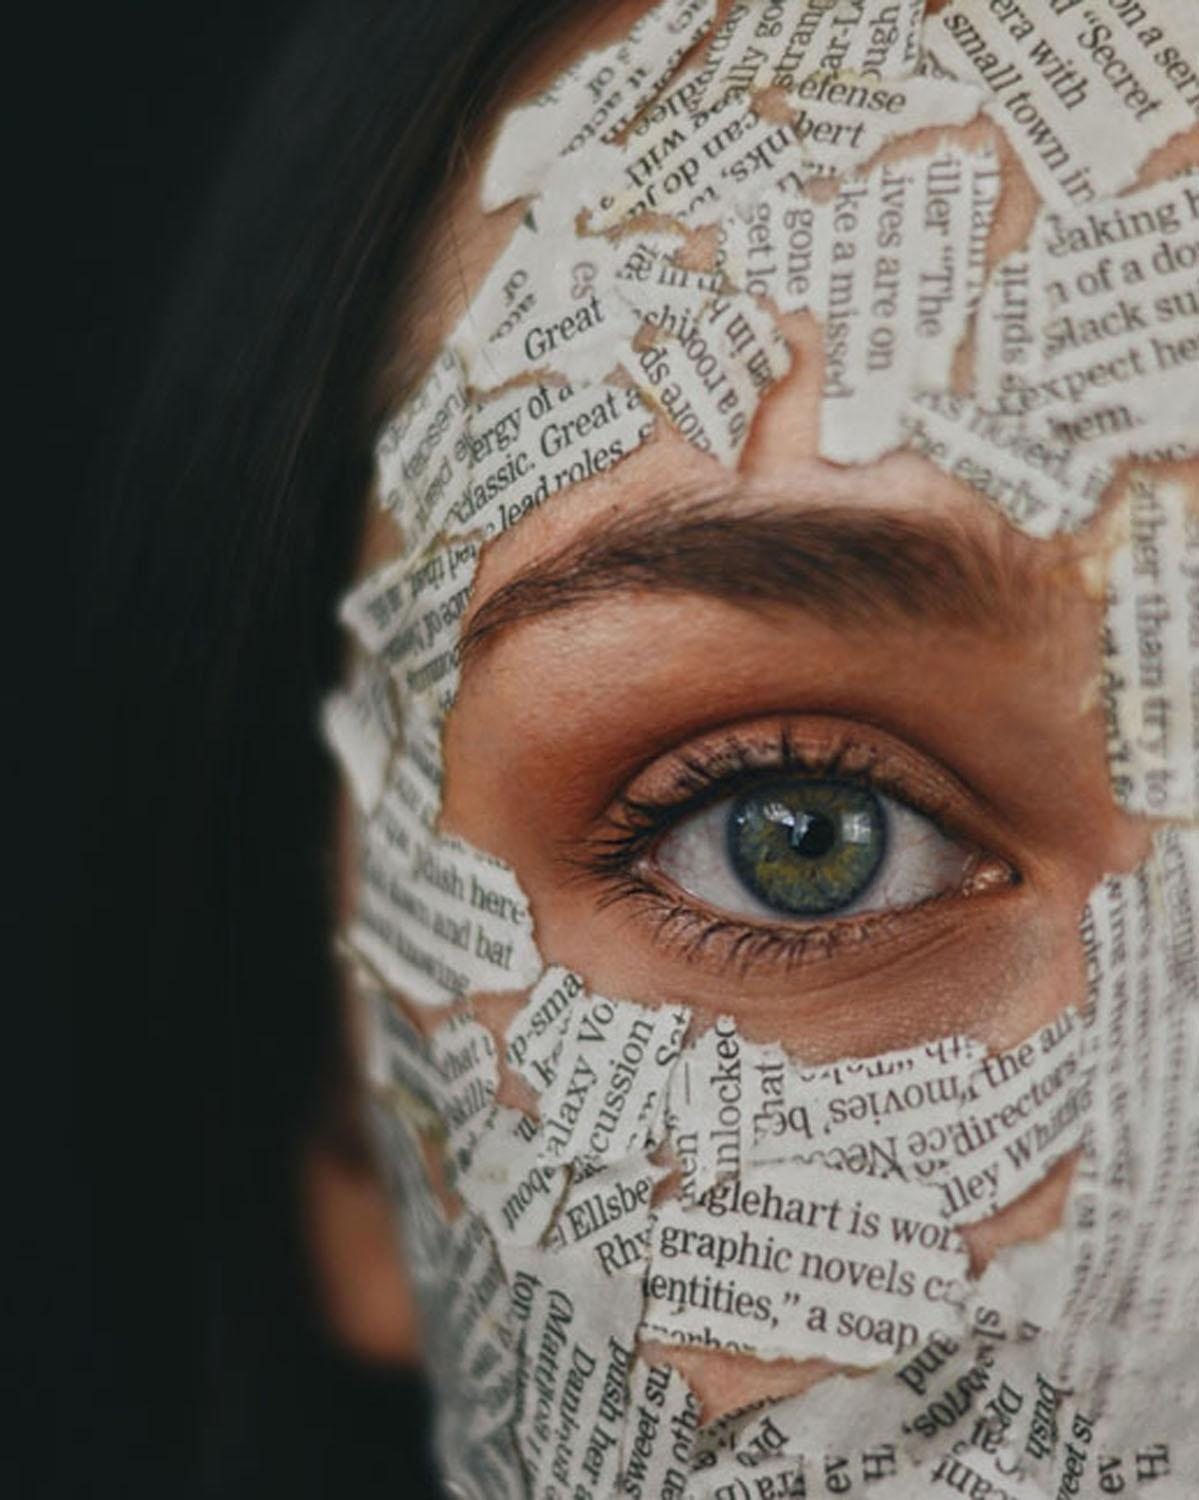 close up with eye surrounded by newspaper clippings